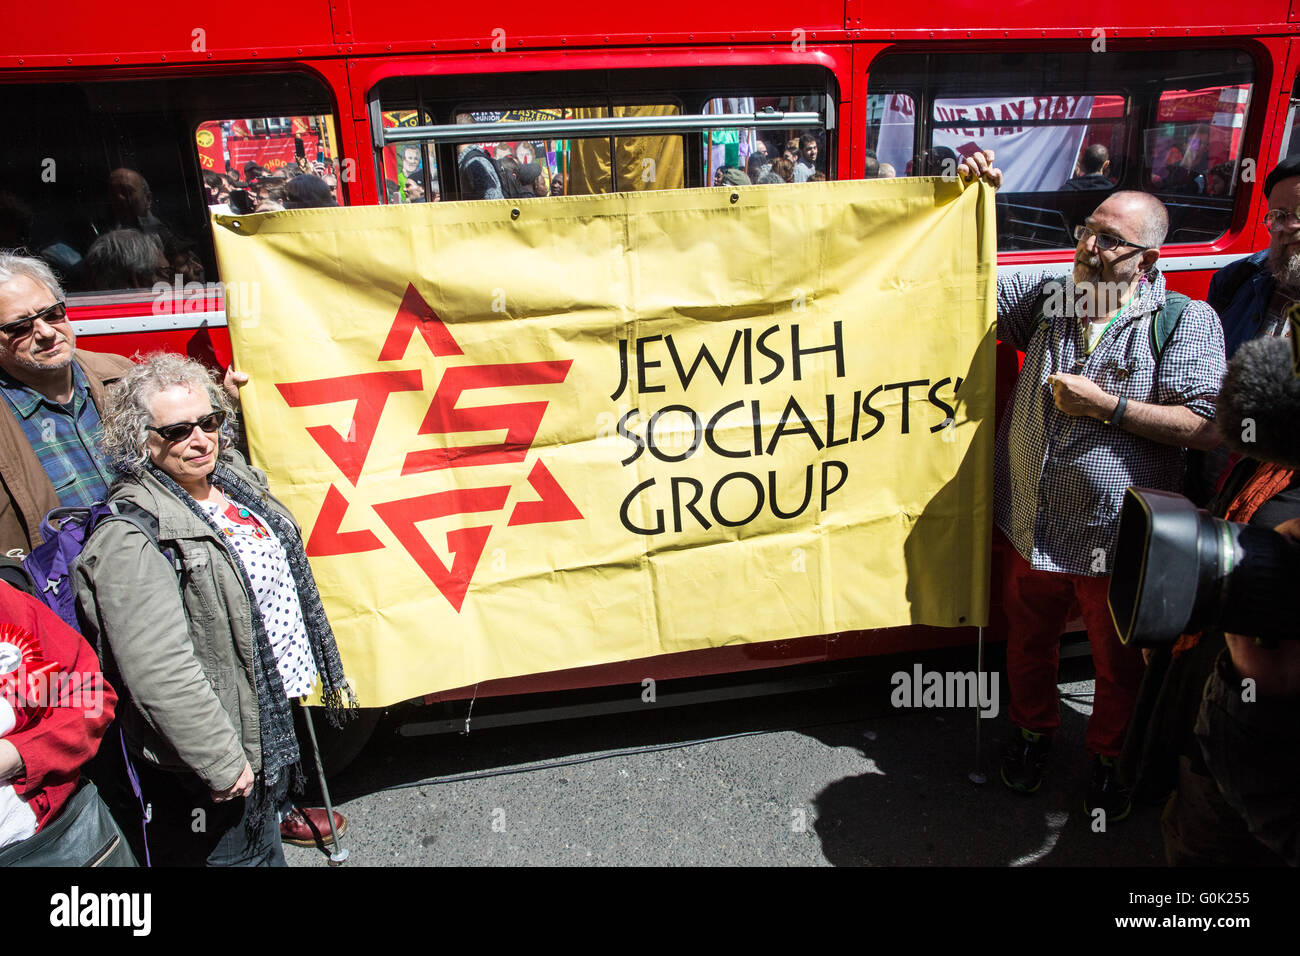 London, UK. 1st May, 2016. A Jewish Socialists' Group banner at the May Day rally on Clerkenwell Green. Credit: - Stock Image